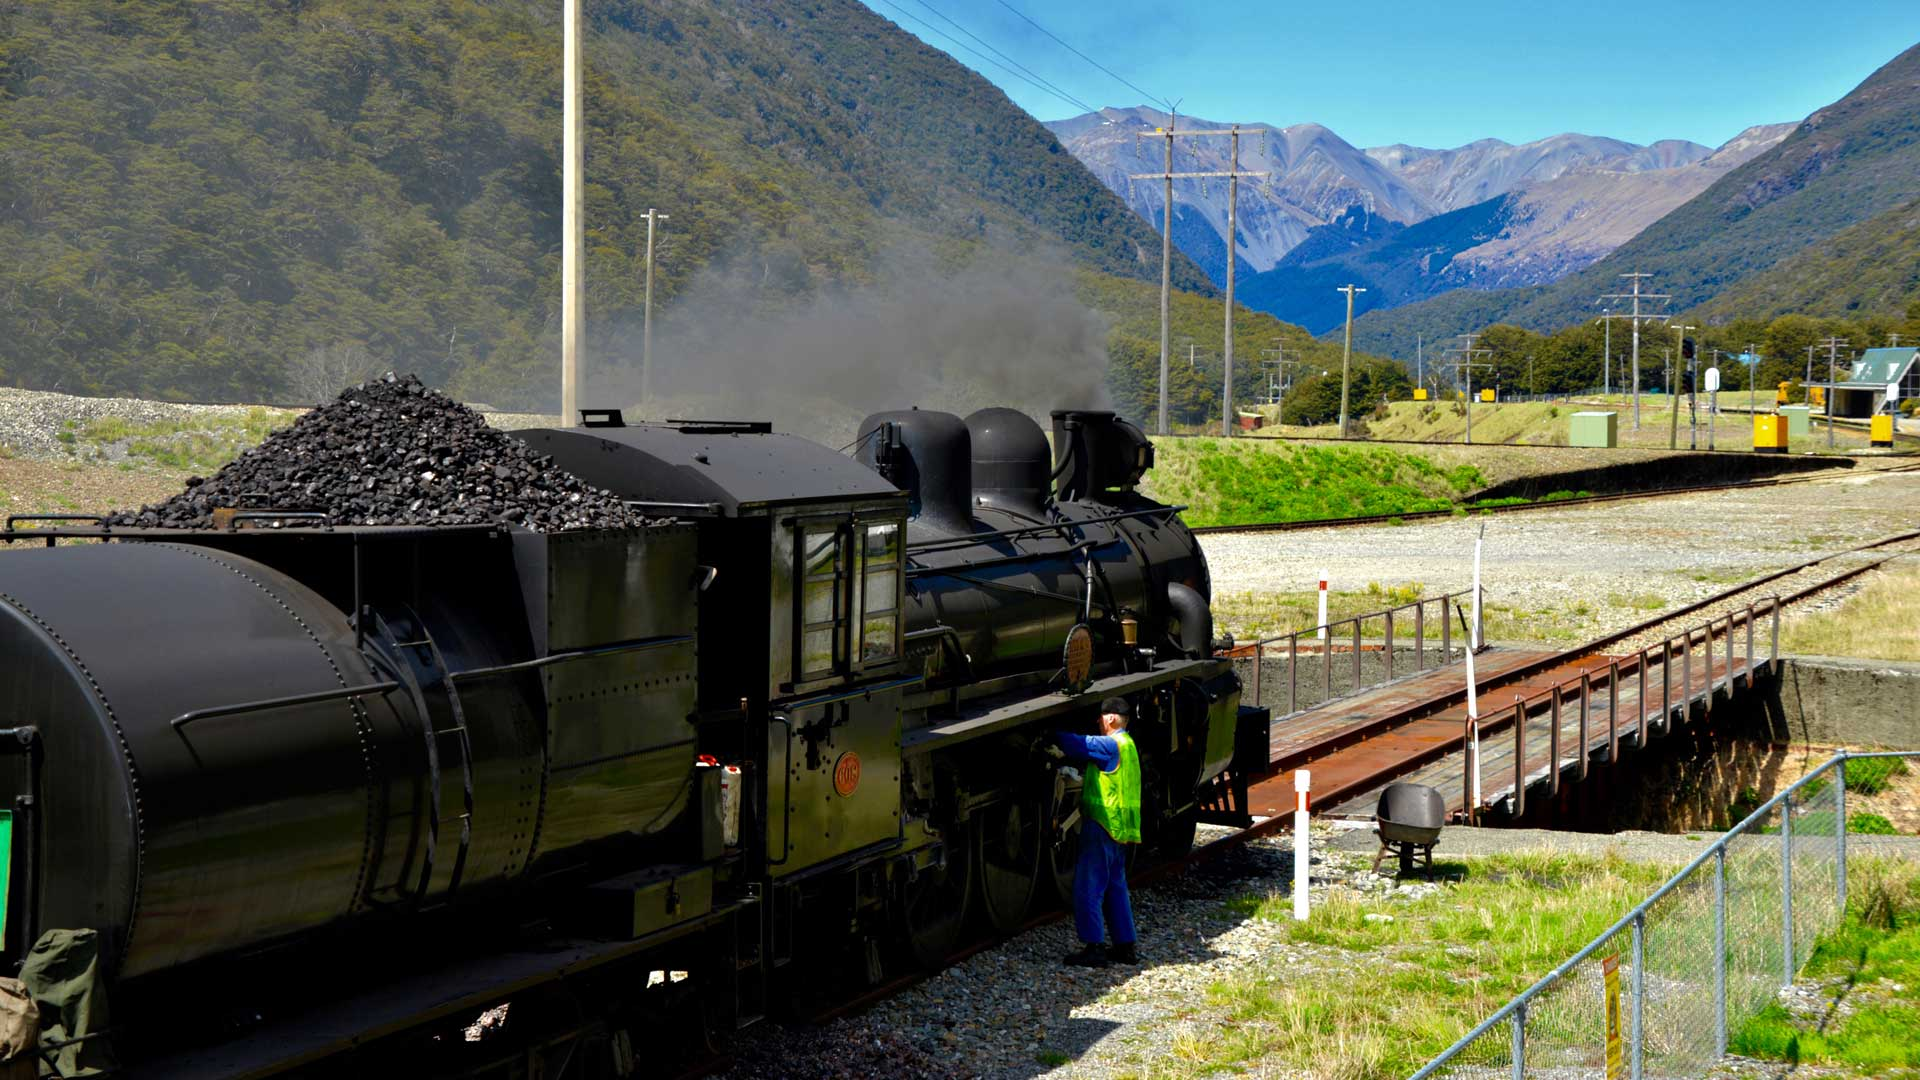 Steam train at Arthur's Pass Station